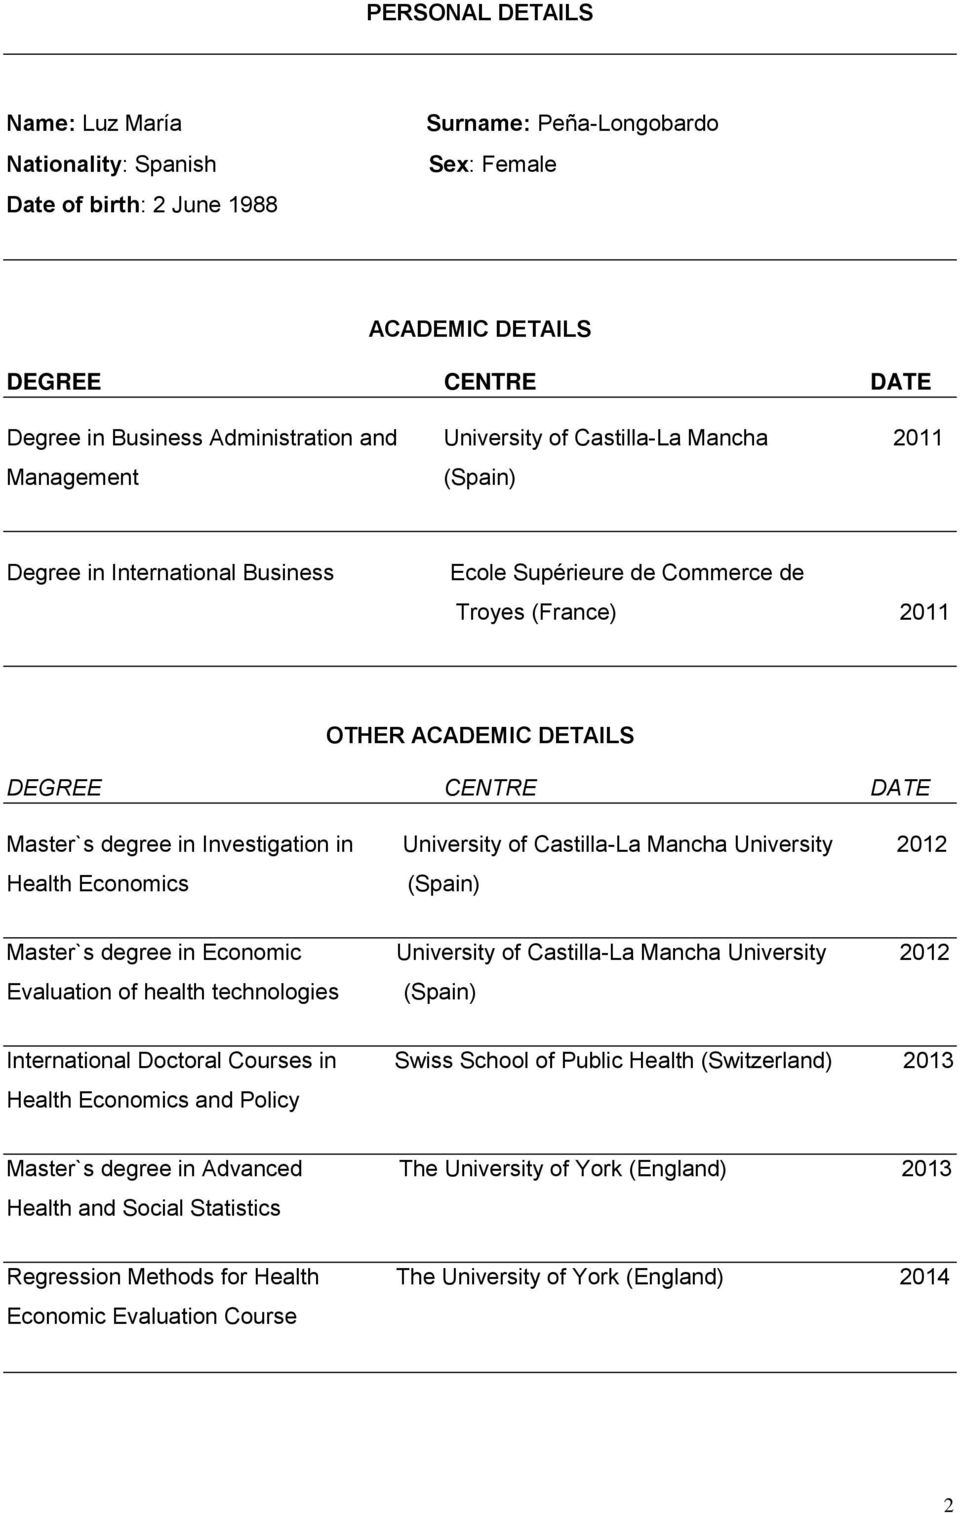 degree in Investigation in University of Castilla-La Mancha University 2012 Health Economics (Spain) Master`s degree in Economic University of Castilla-La Mancha University 2012 Evaluation of health